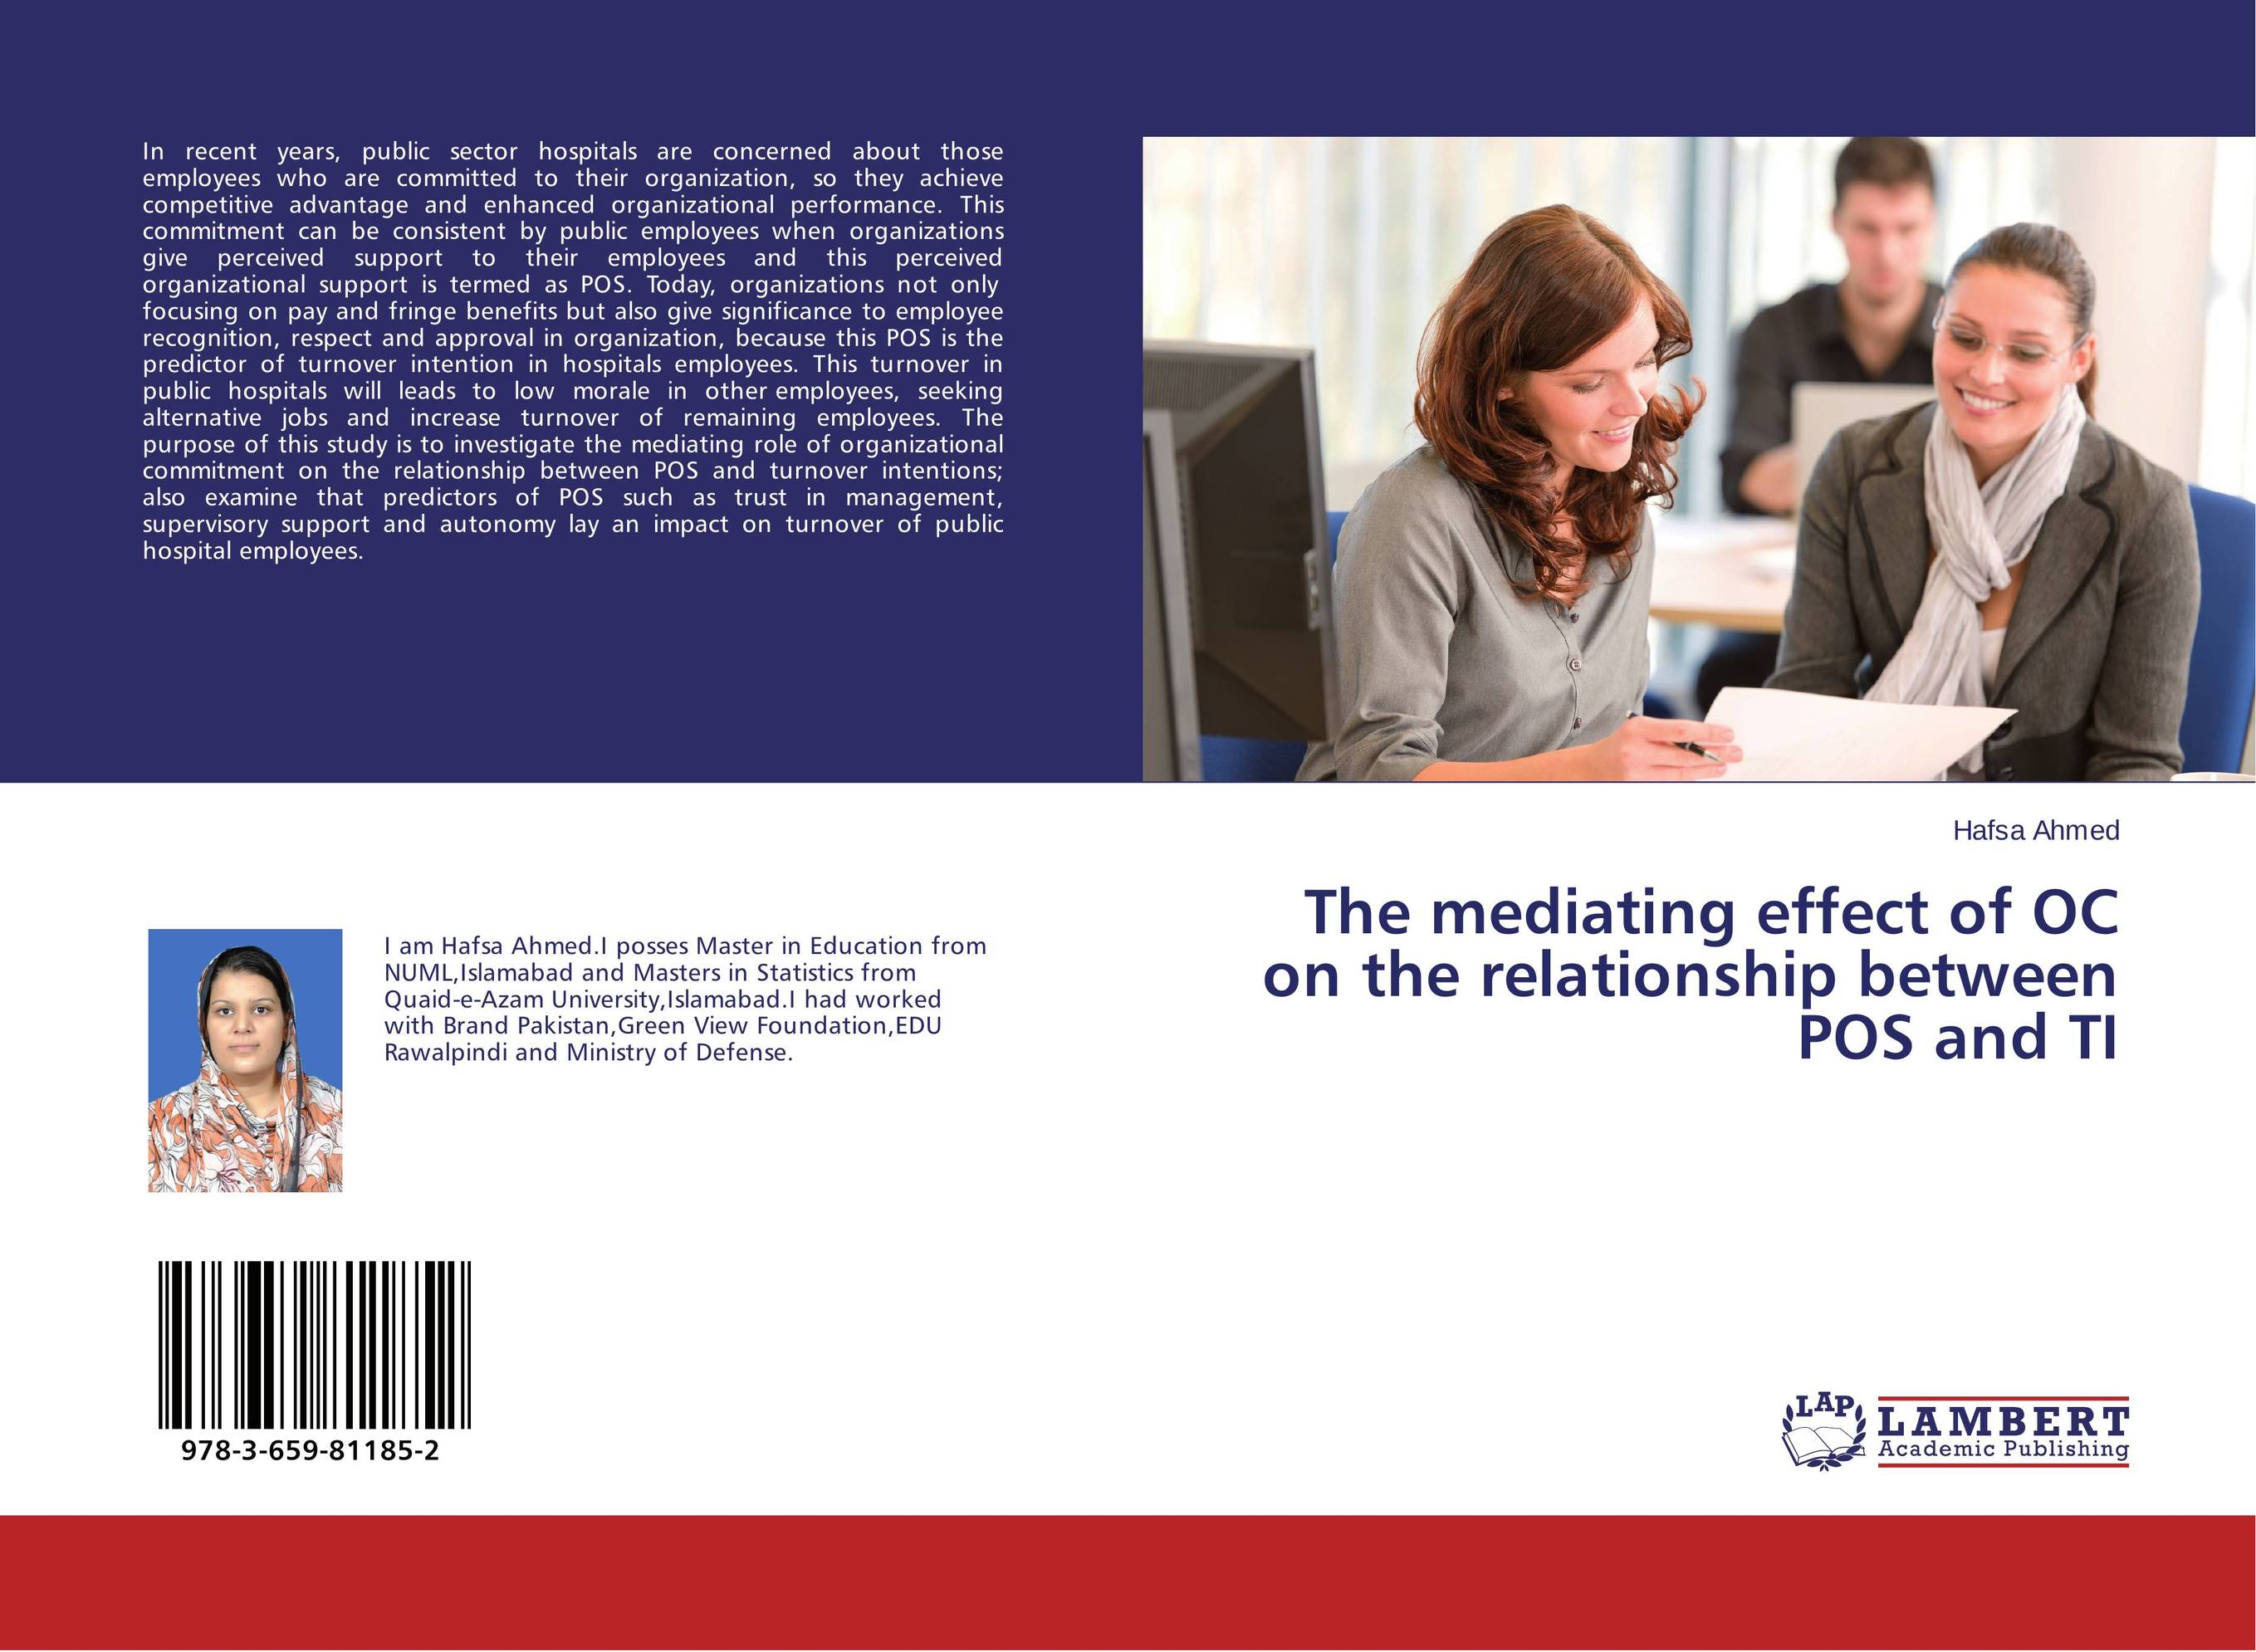 The mediating effect of OC on the relationship between POS and TI impact of job satisfaction on turnover intentions